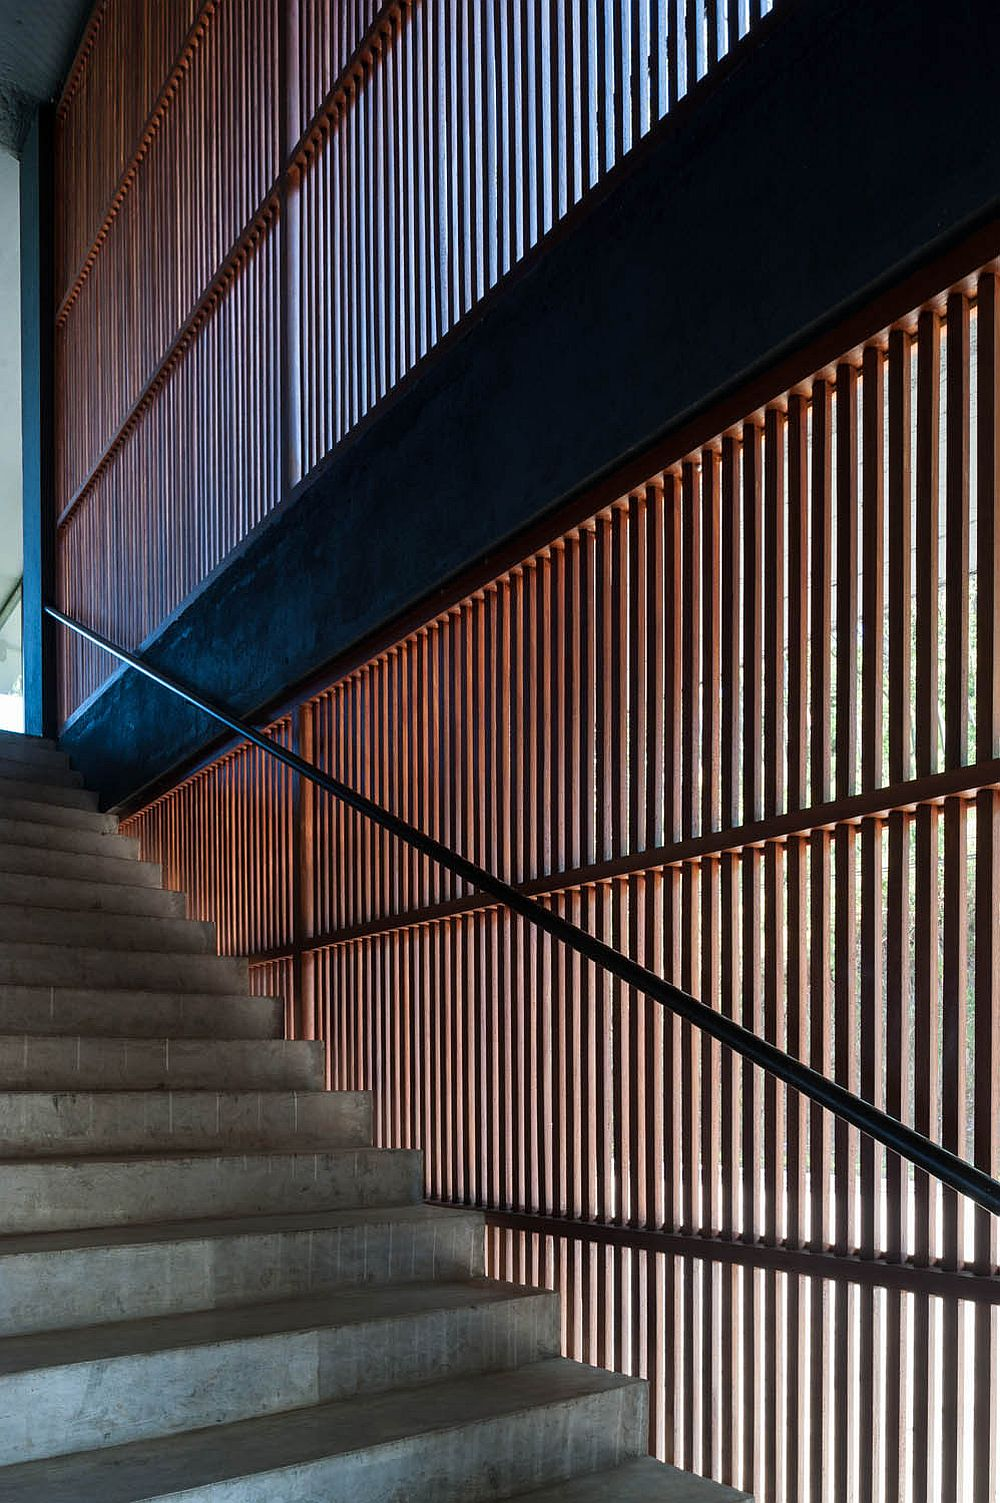 Wooden slats next to the stairs bring in ample natural light